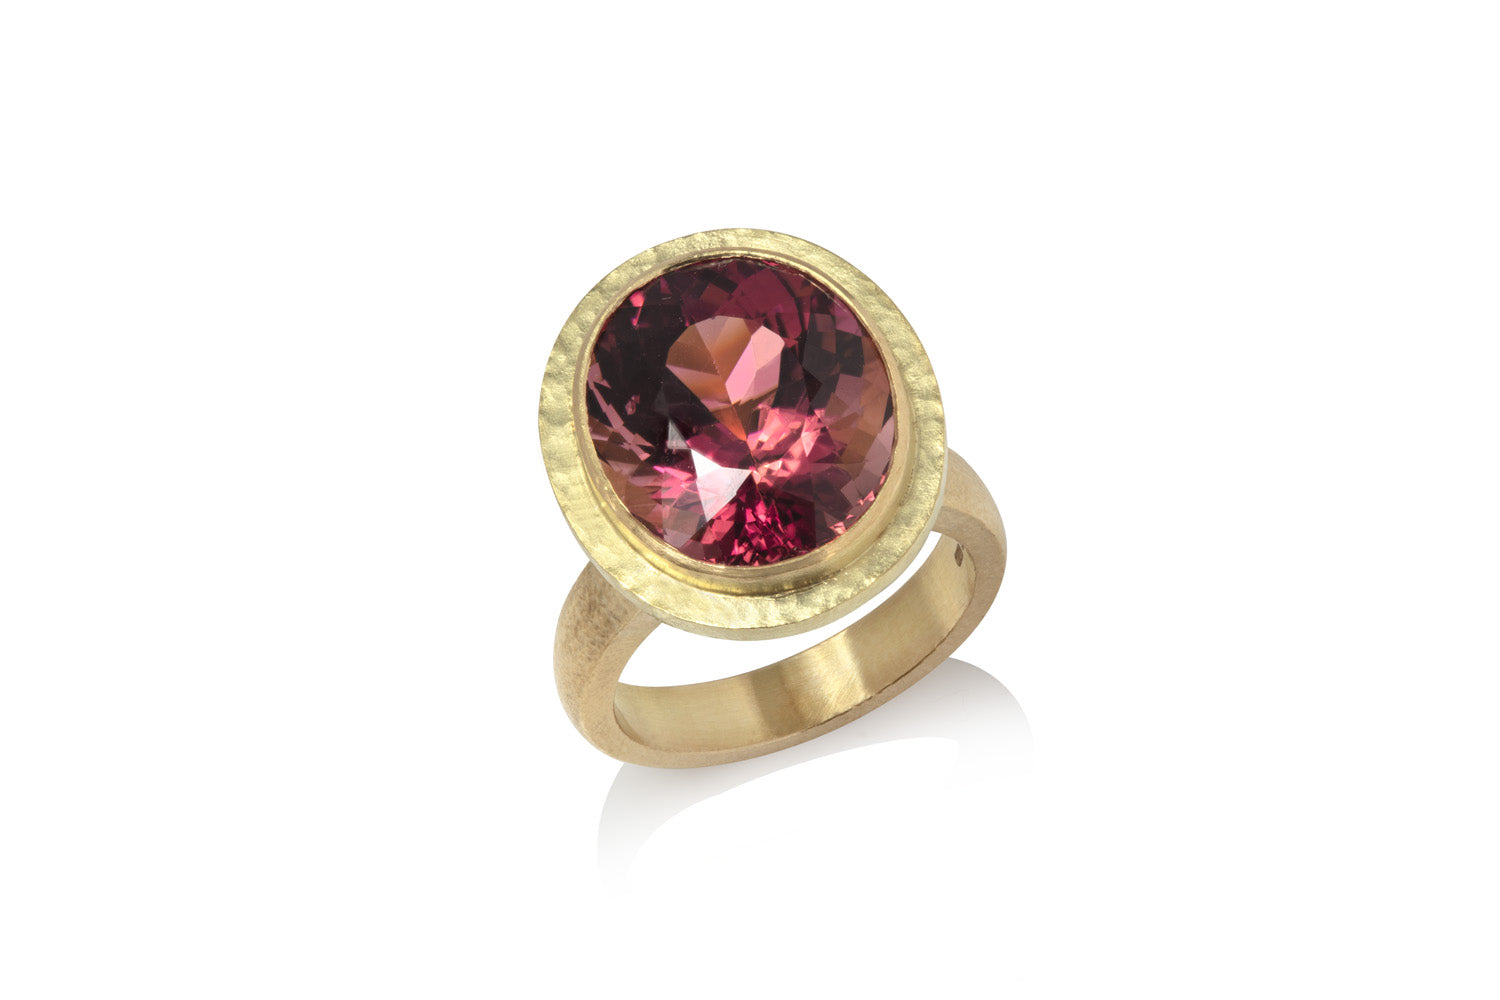 Pink tourmaline bespoke commission in hammered texture yellow gold